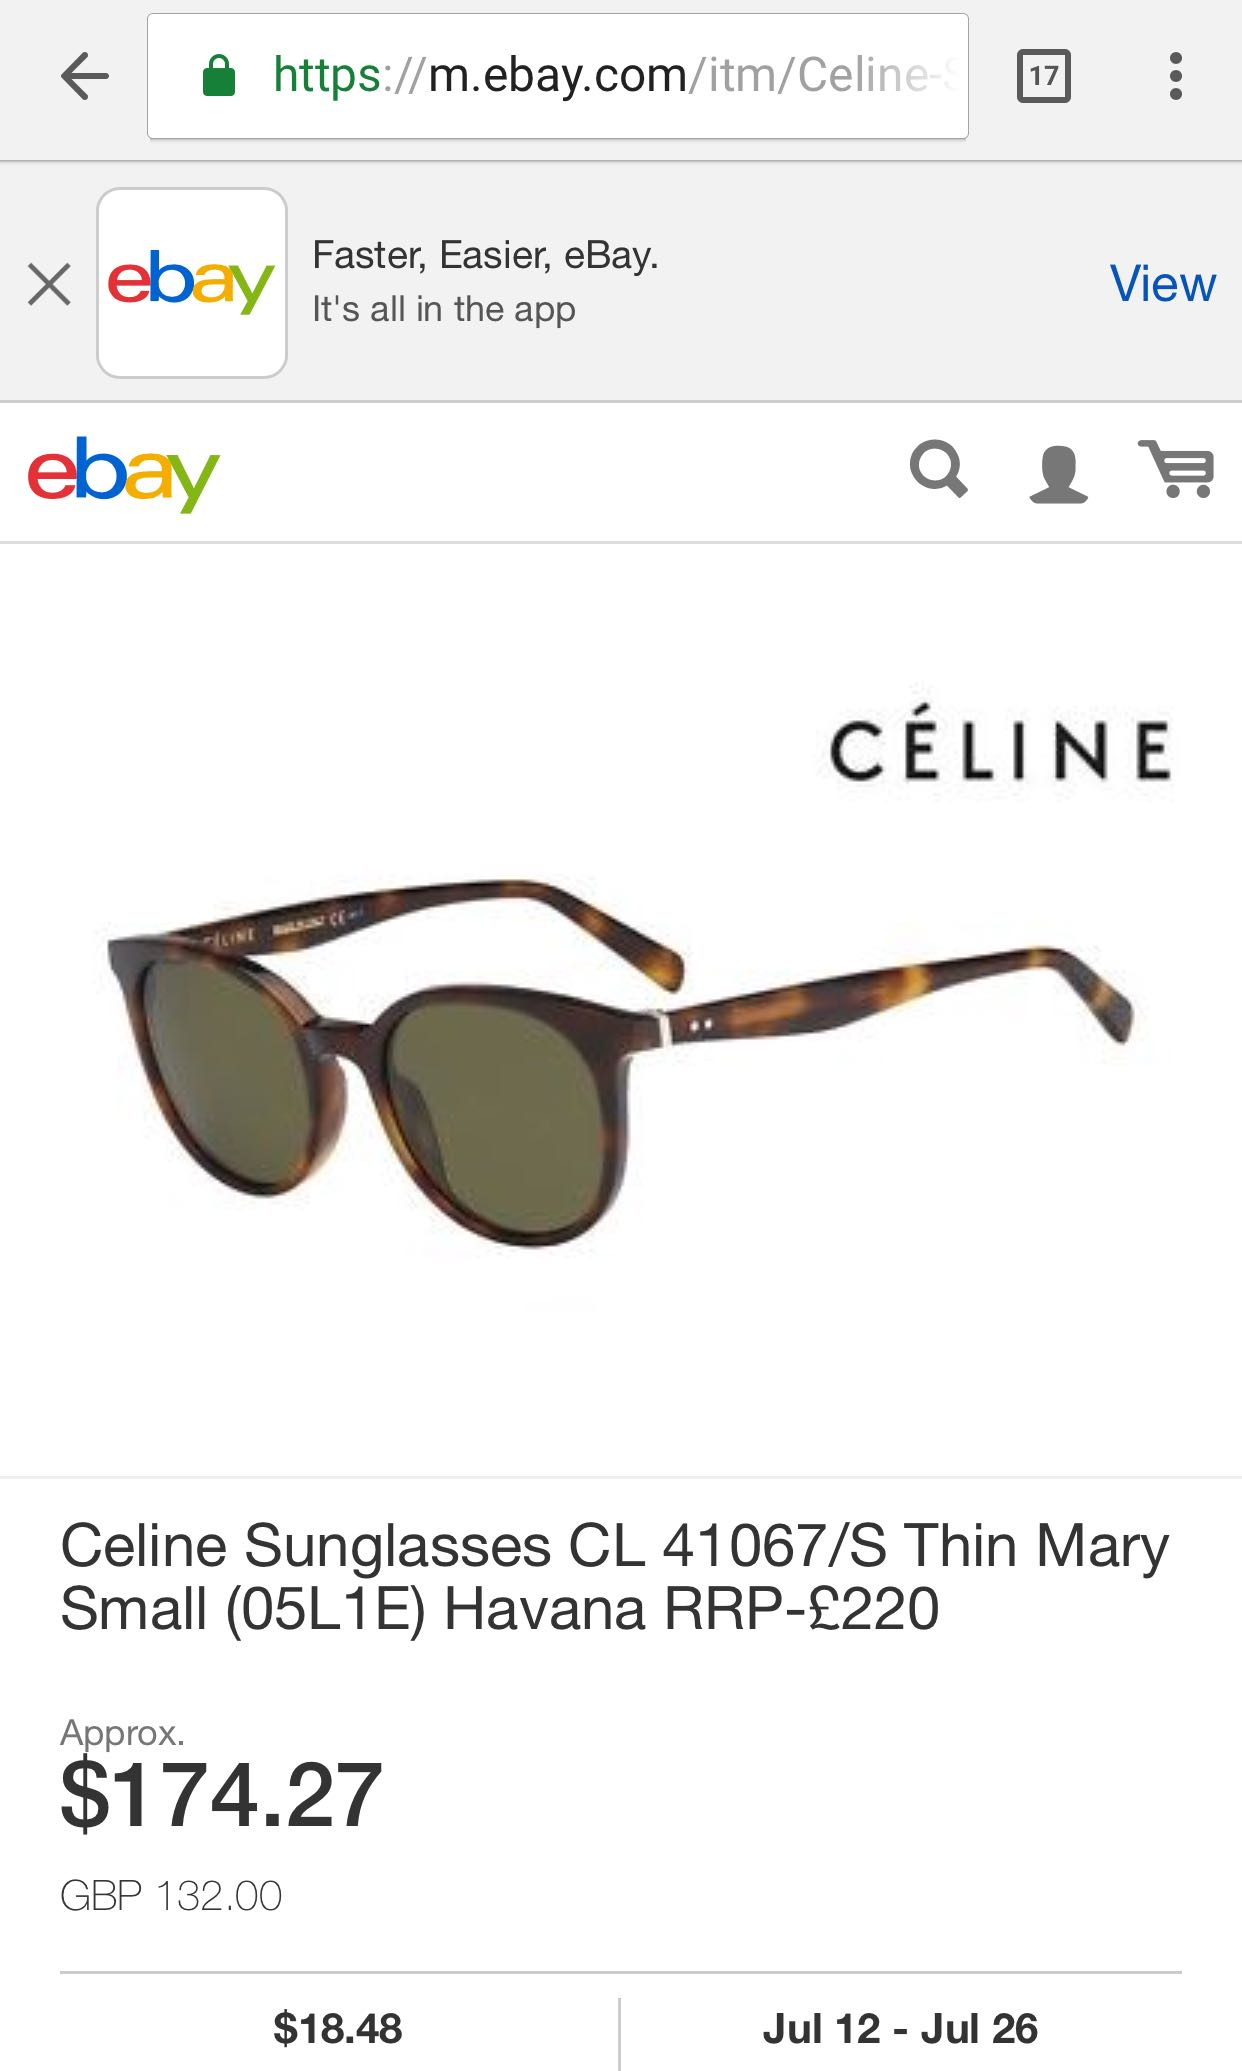 c611ca9af27a Looking for Celine Sunglasses